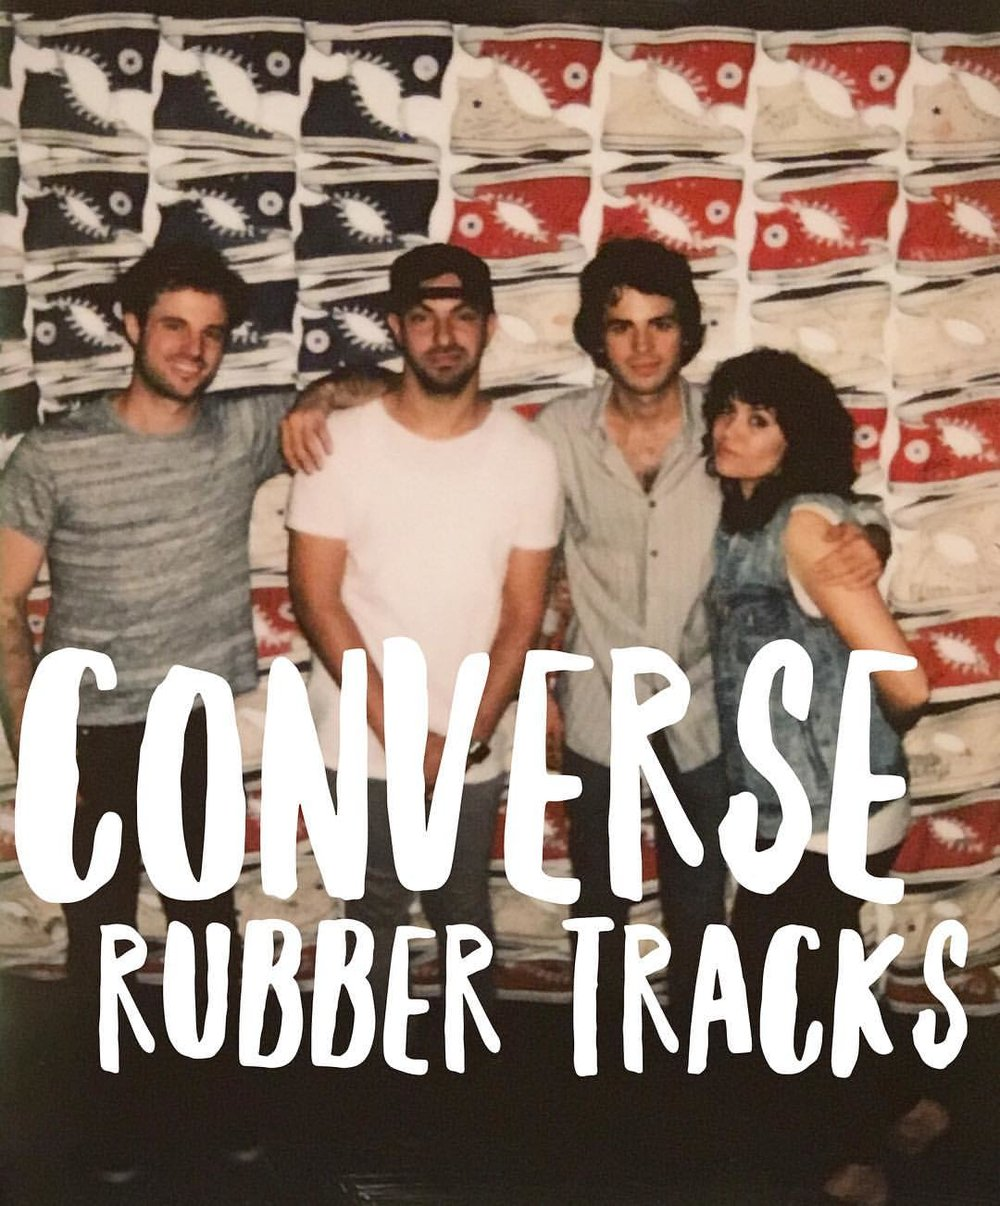 🤘 to @converse @rubbertracks for inviting us to rock out in their studio and @indabamusic for hooking it up 👟🎛🎸🔥